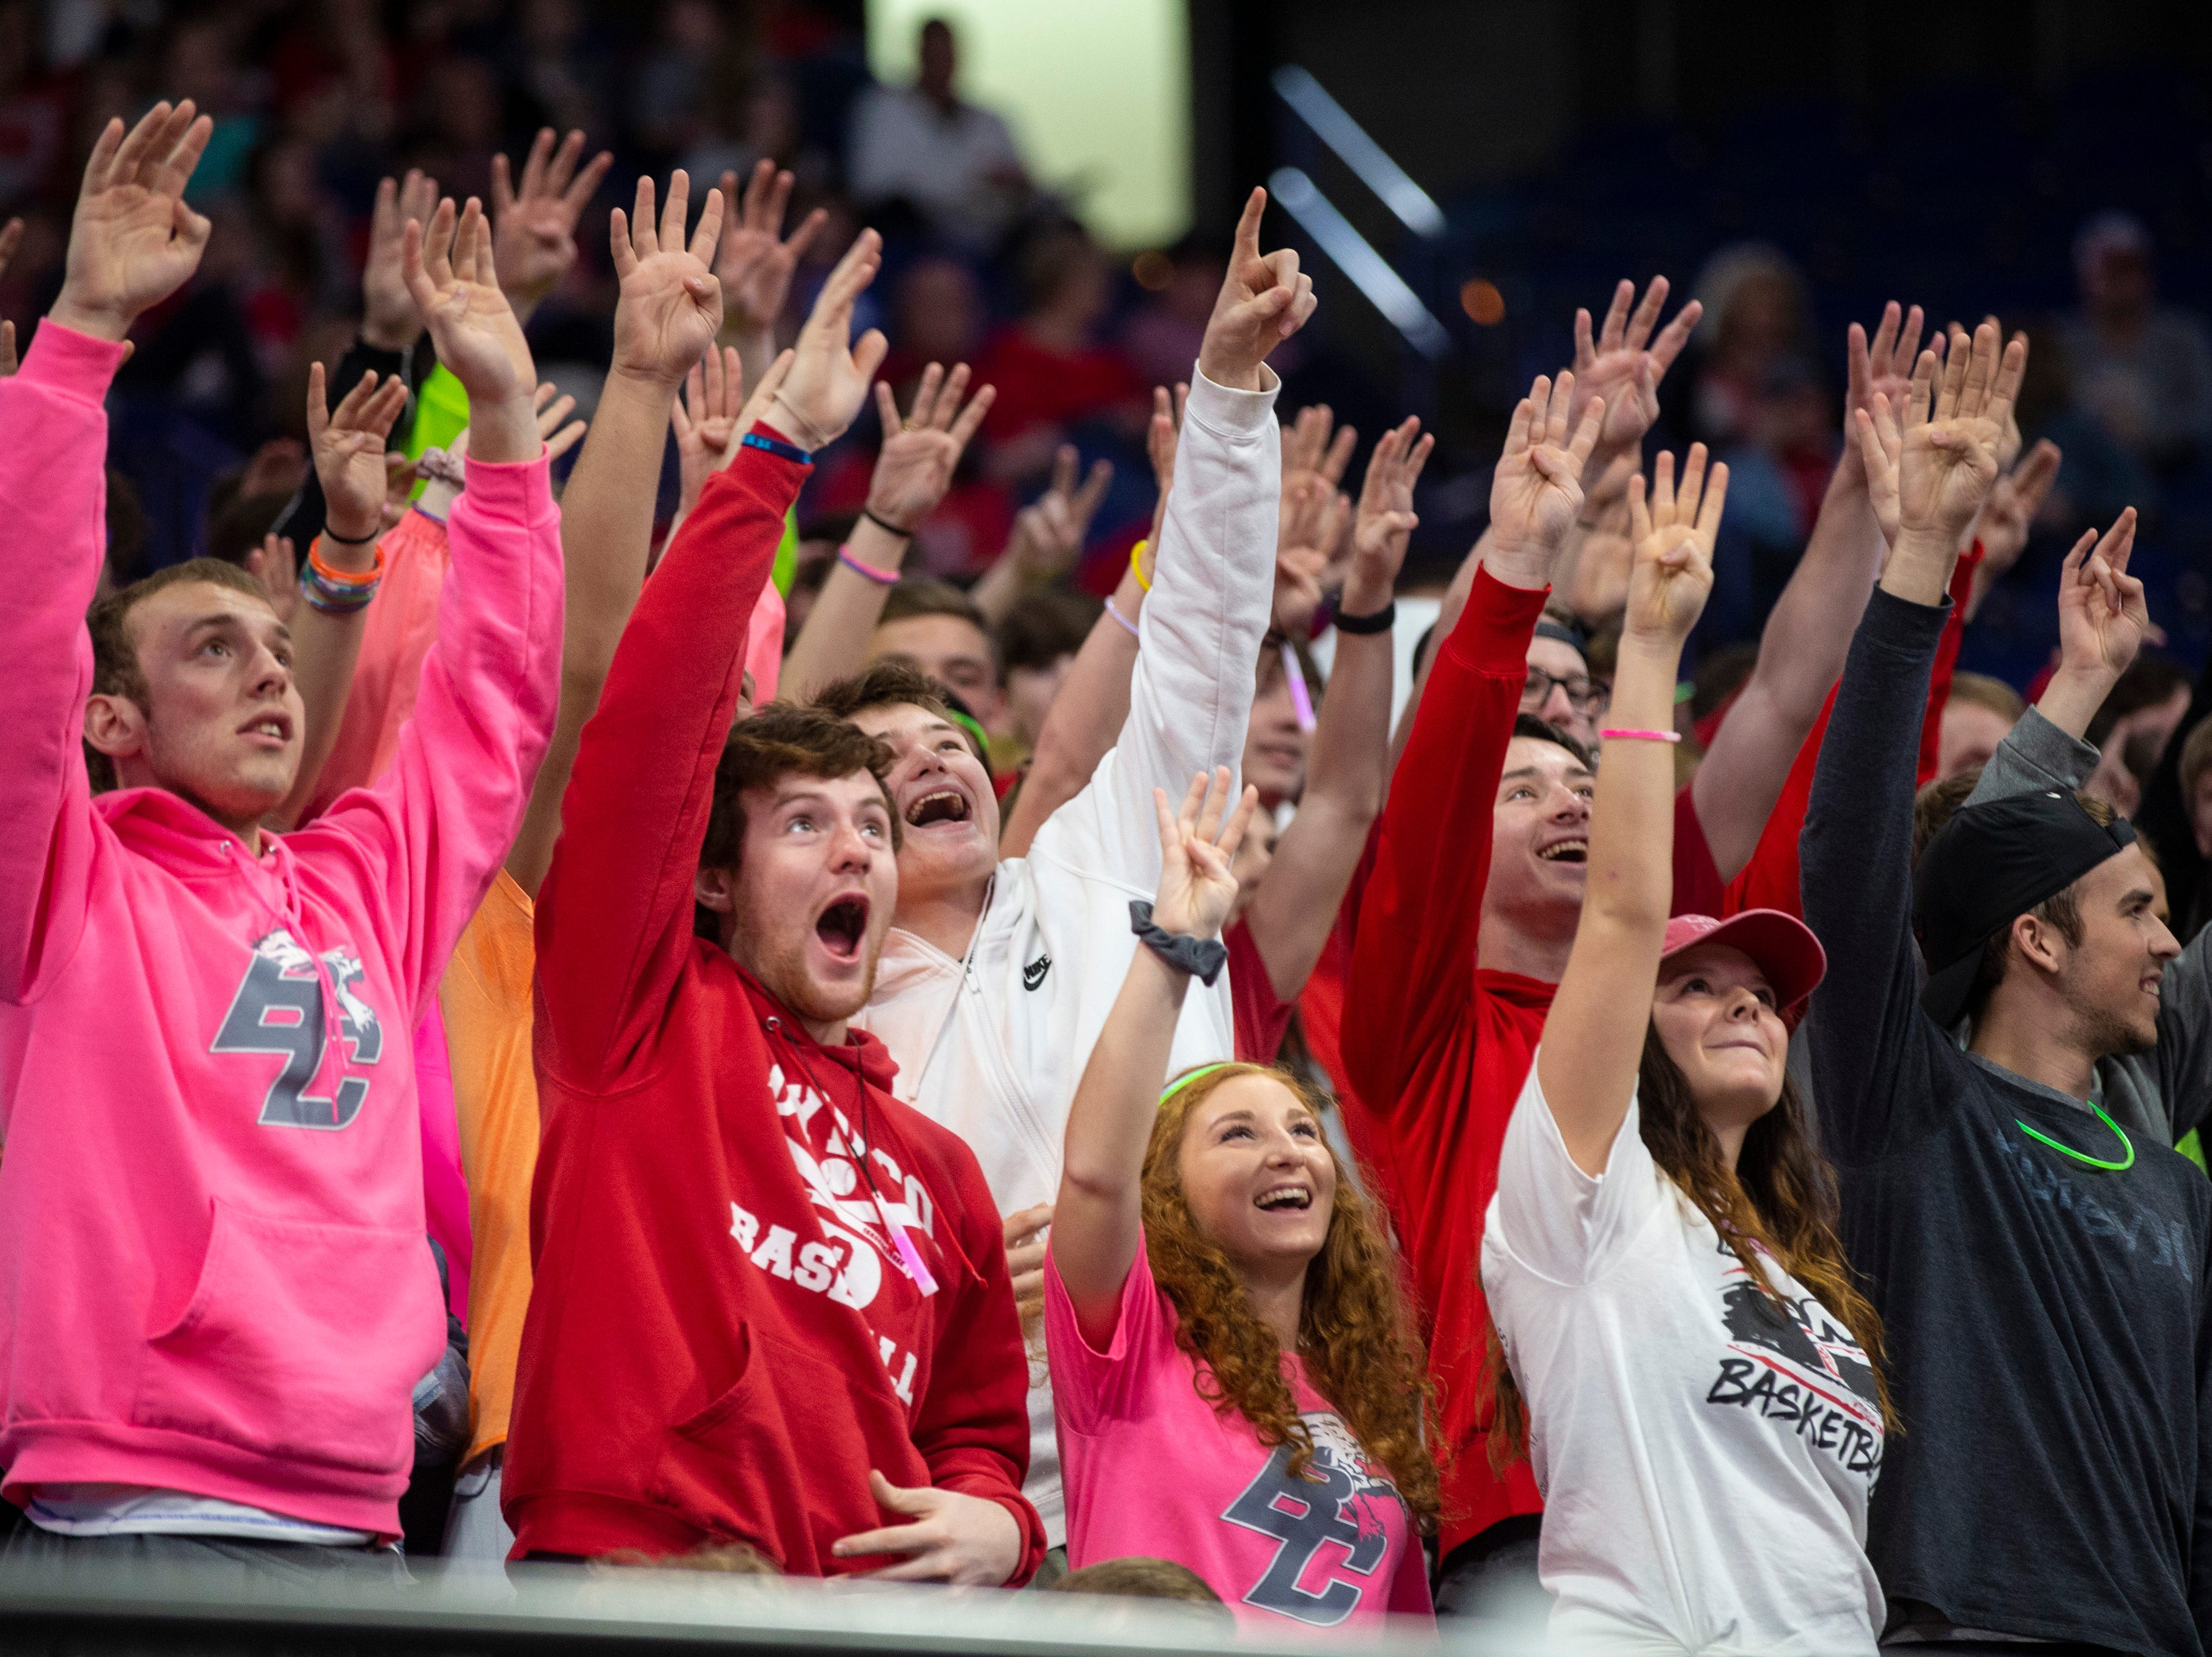 Boyd County fans cheer as Boyd County took on Louisville Male in the KHSAA state basketball tournament in Rupp Arena. Male eliminated Boyd County 74-56. March 14, 2019